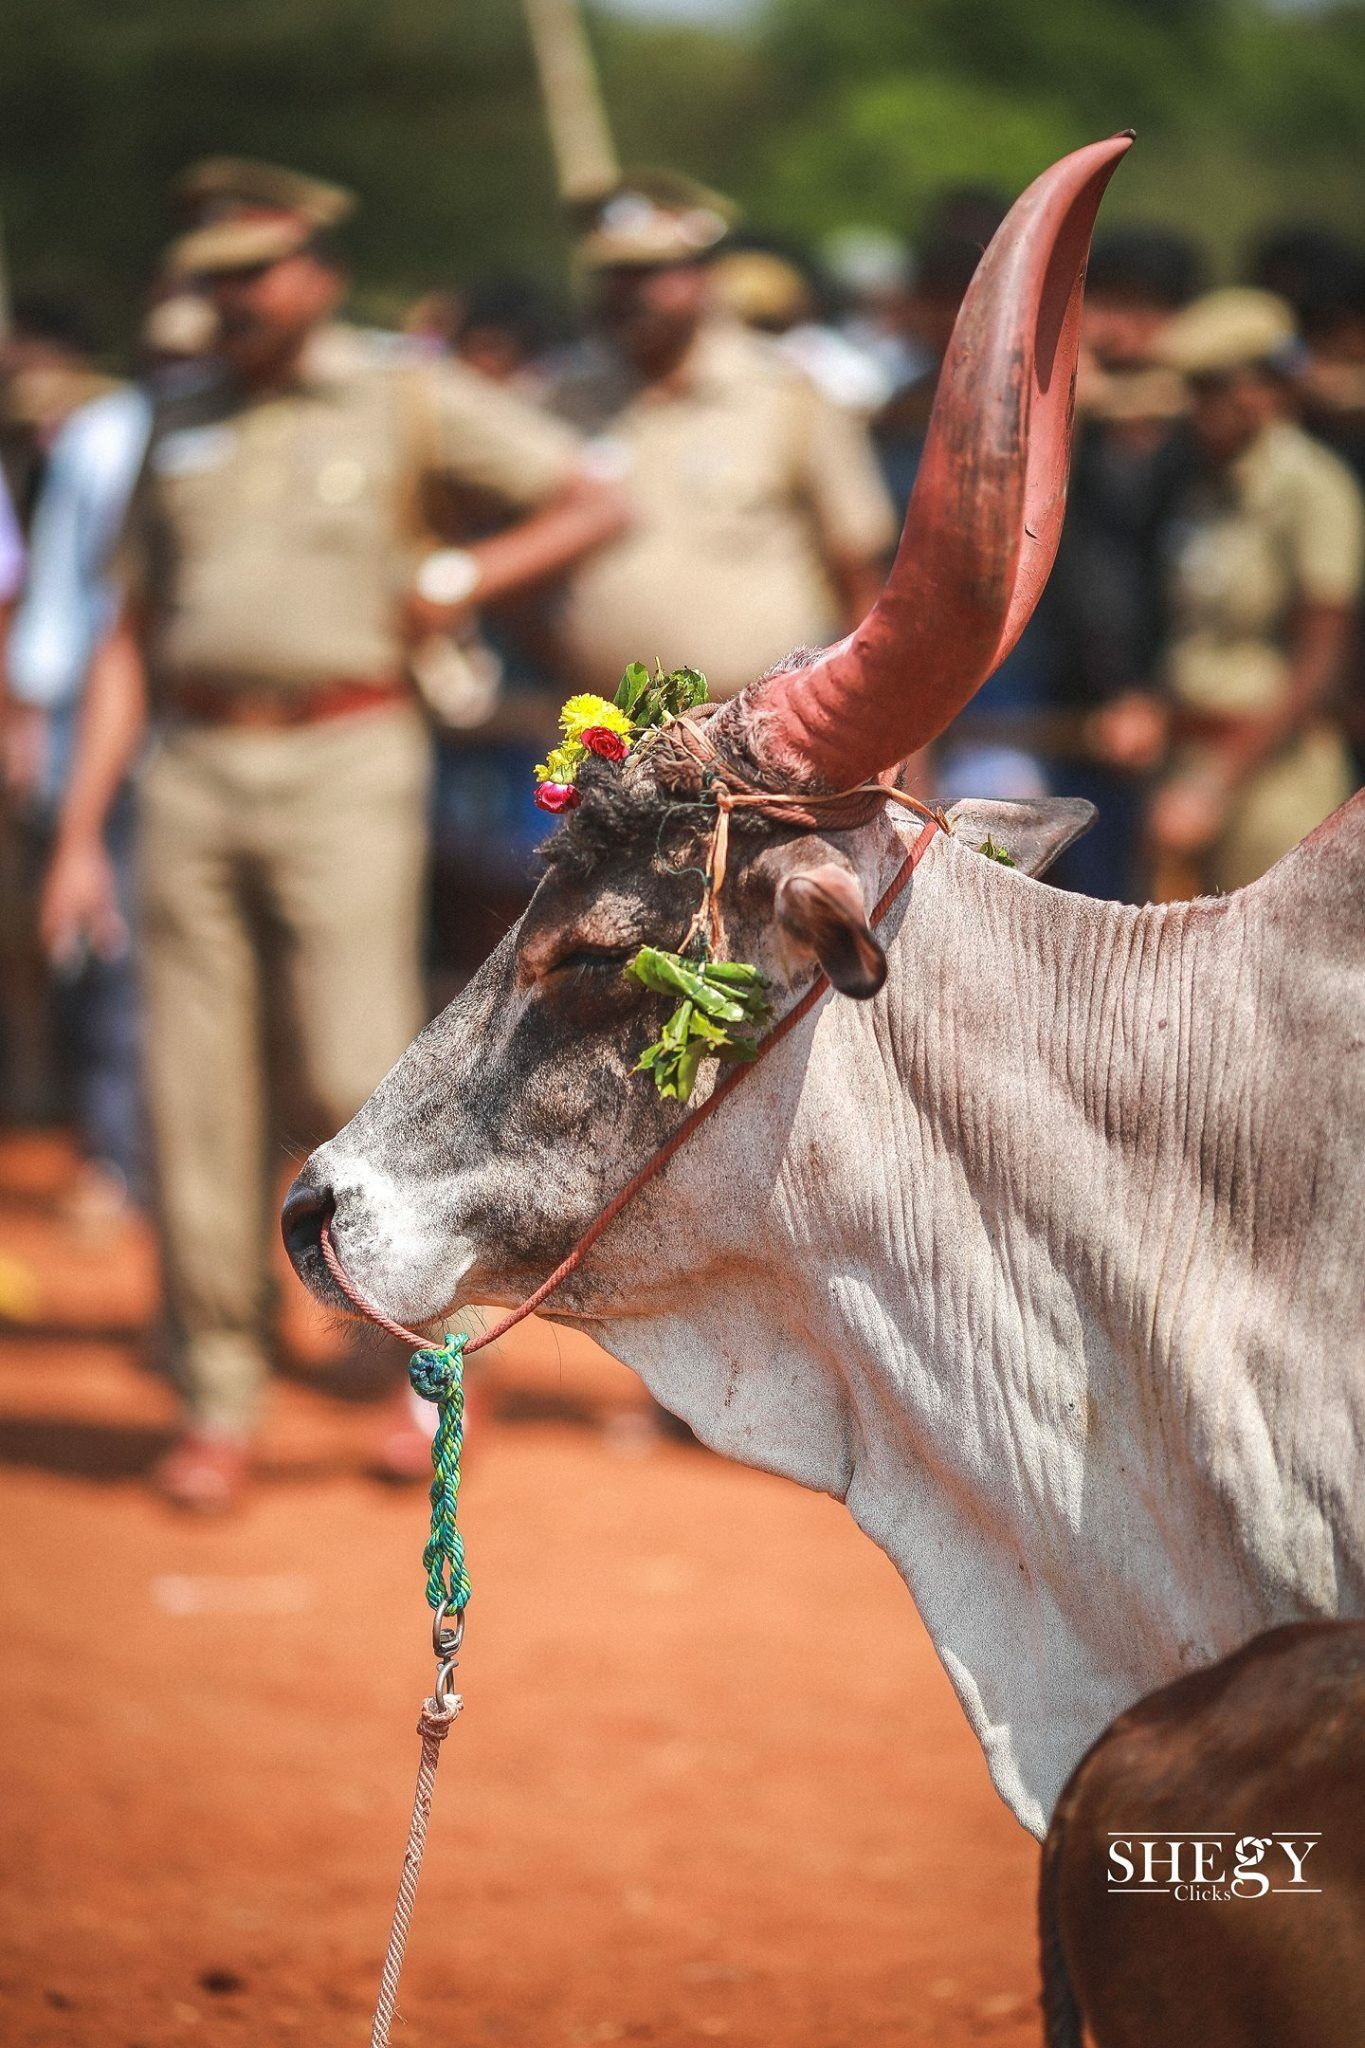 Jallikattu Village Photography Photoshop Backgrounds Background For Photography John constable was born in east bergholt, a village on the river stour in suffolk, to golding and ann (watts) constable. jallikattu village photography